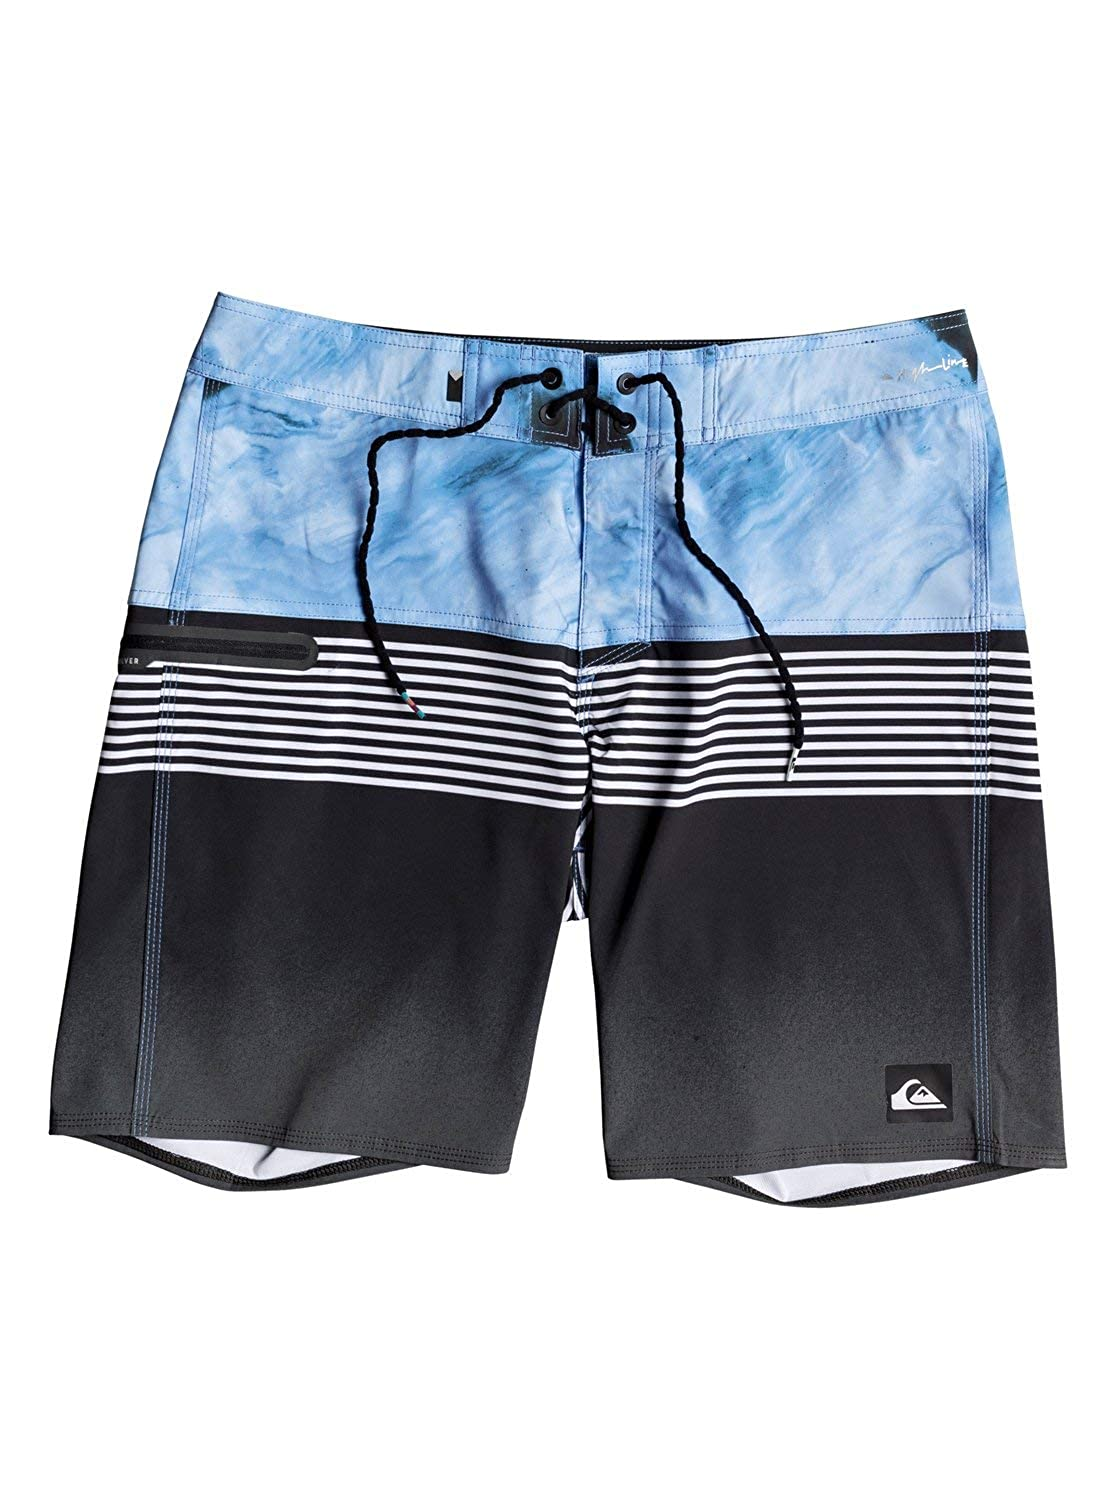 QuikSilber Highline Lava Division 19  - Boardshorts Boardshorts Boardshorts für Männer EQYBS03916 B0792J5TP9 Badeshorts Bevorzugte Boutique e37b3a